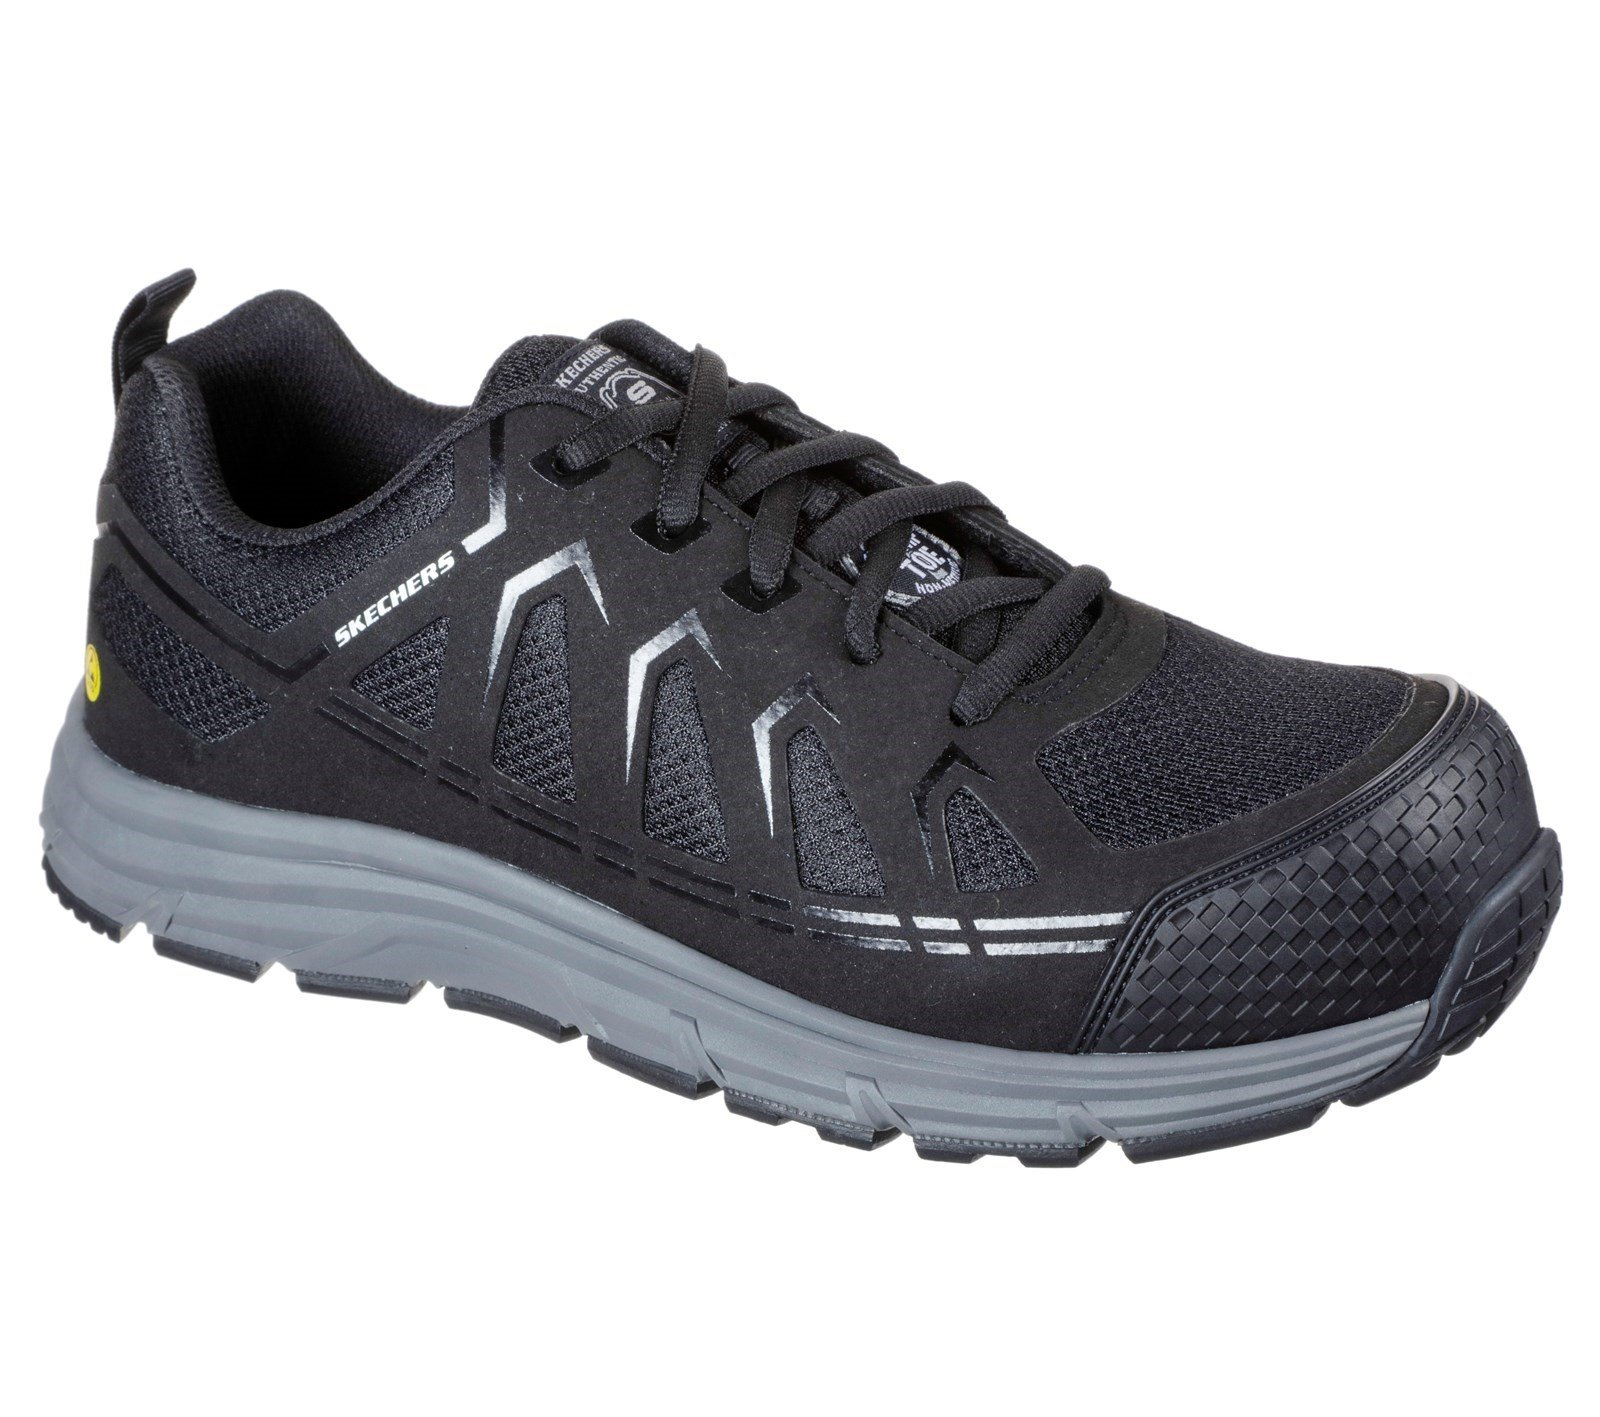 Skechers Unisex Malad Safety Trainer Various Colours 32623 - Black 10